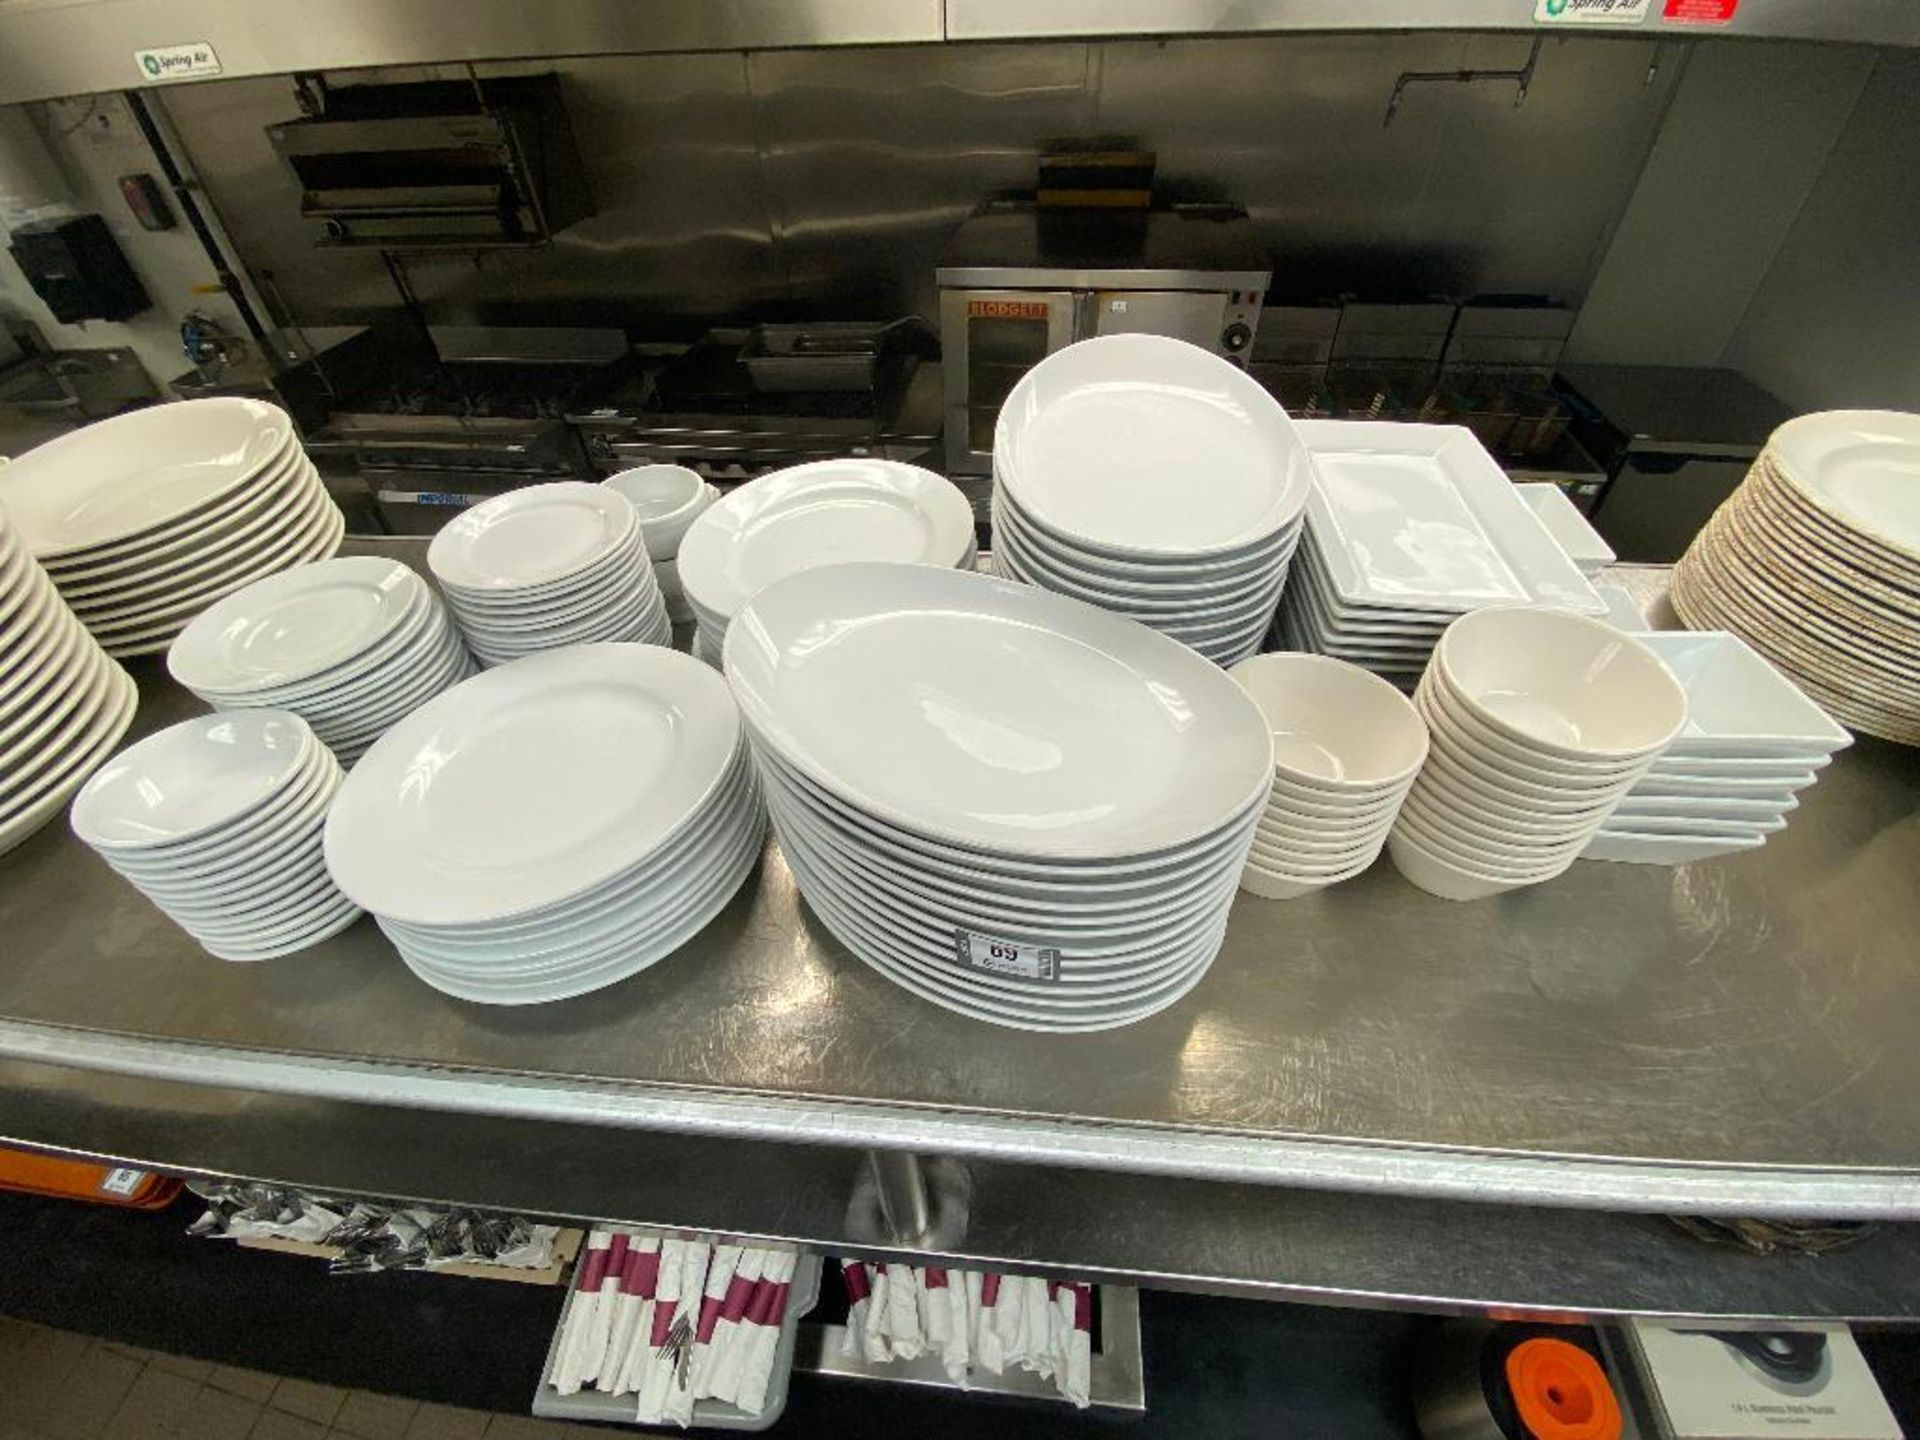 LOT OF ASSORTED DINNERWARE INCLUDING: PLATES, BOWLS, SERVING TRAY - Image 2 of 4